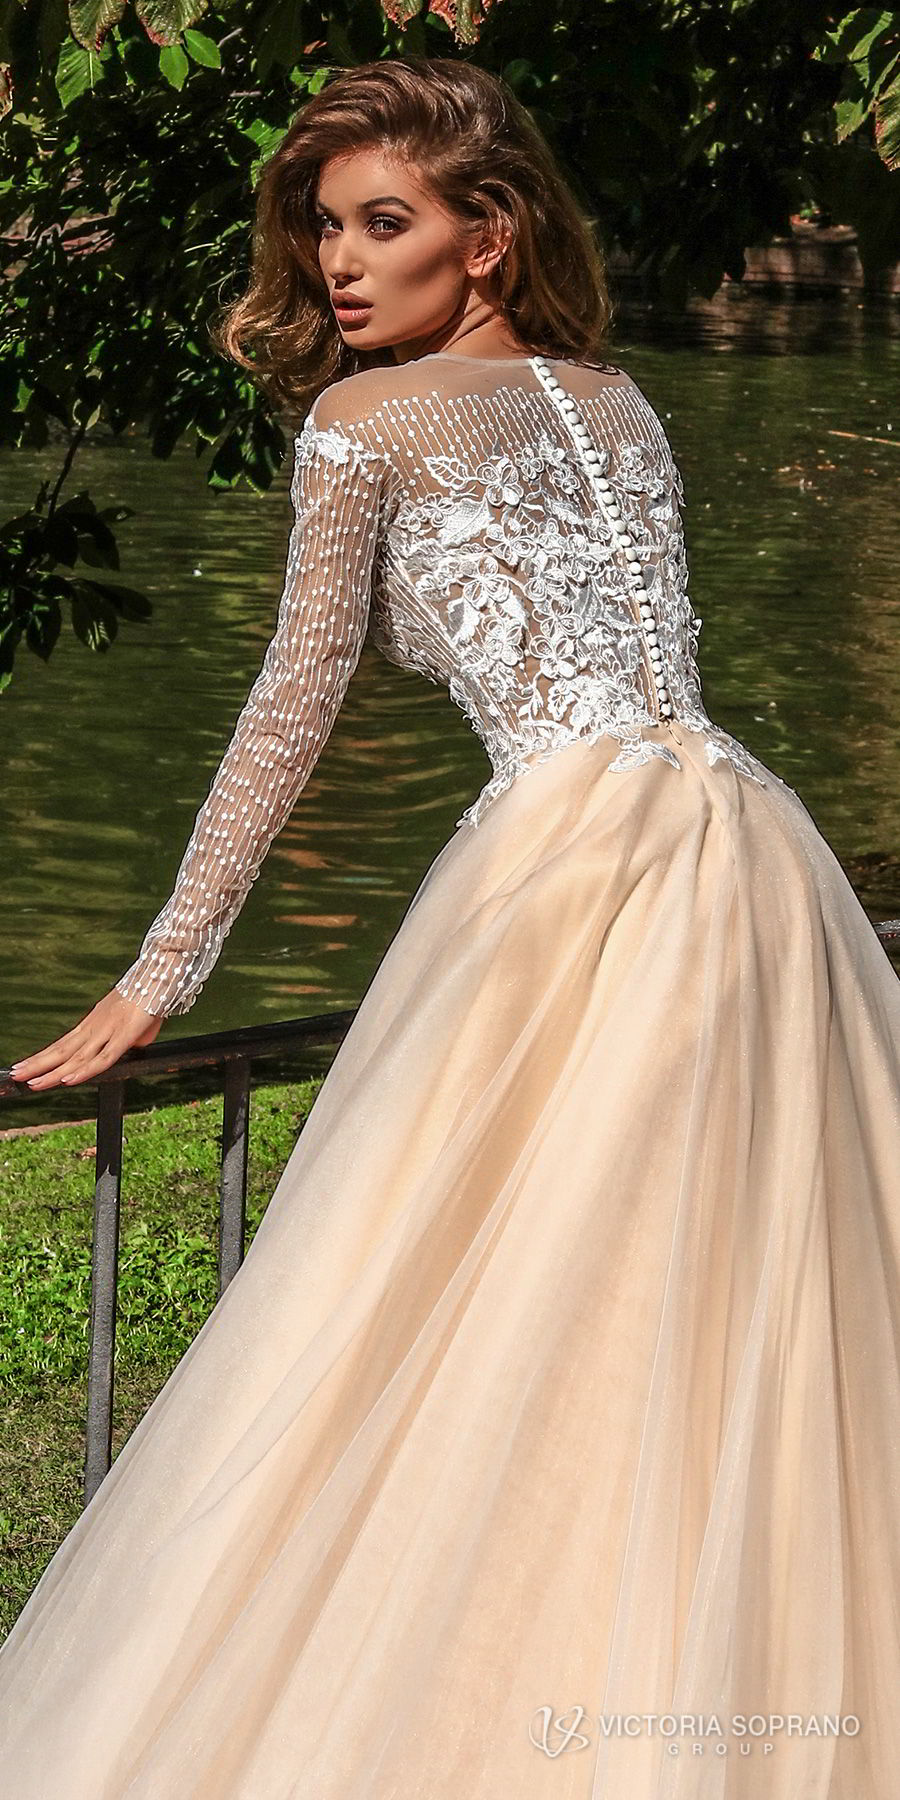 victoria soprano 2018 bridal long sleeves jewel neckline heavily embellished bodice romantic elegant blush color a line wedding dress sheer lace back chapel train (mia) zbv